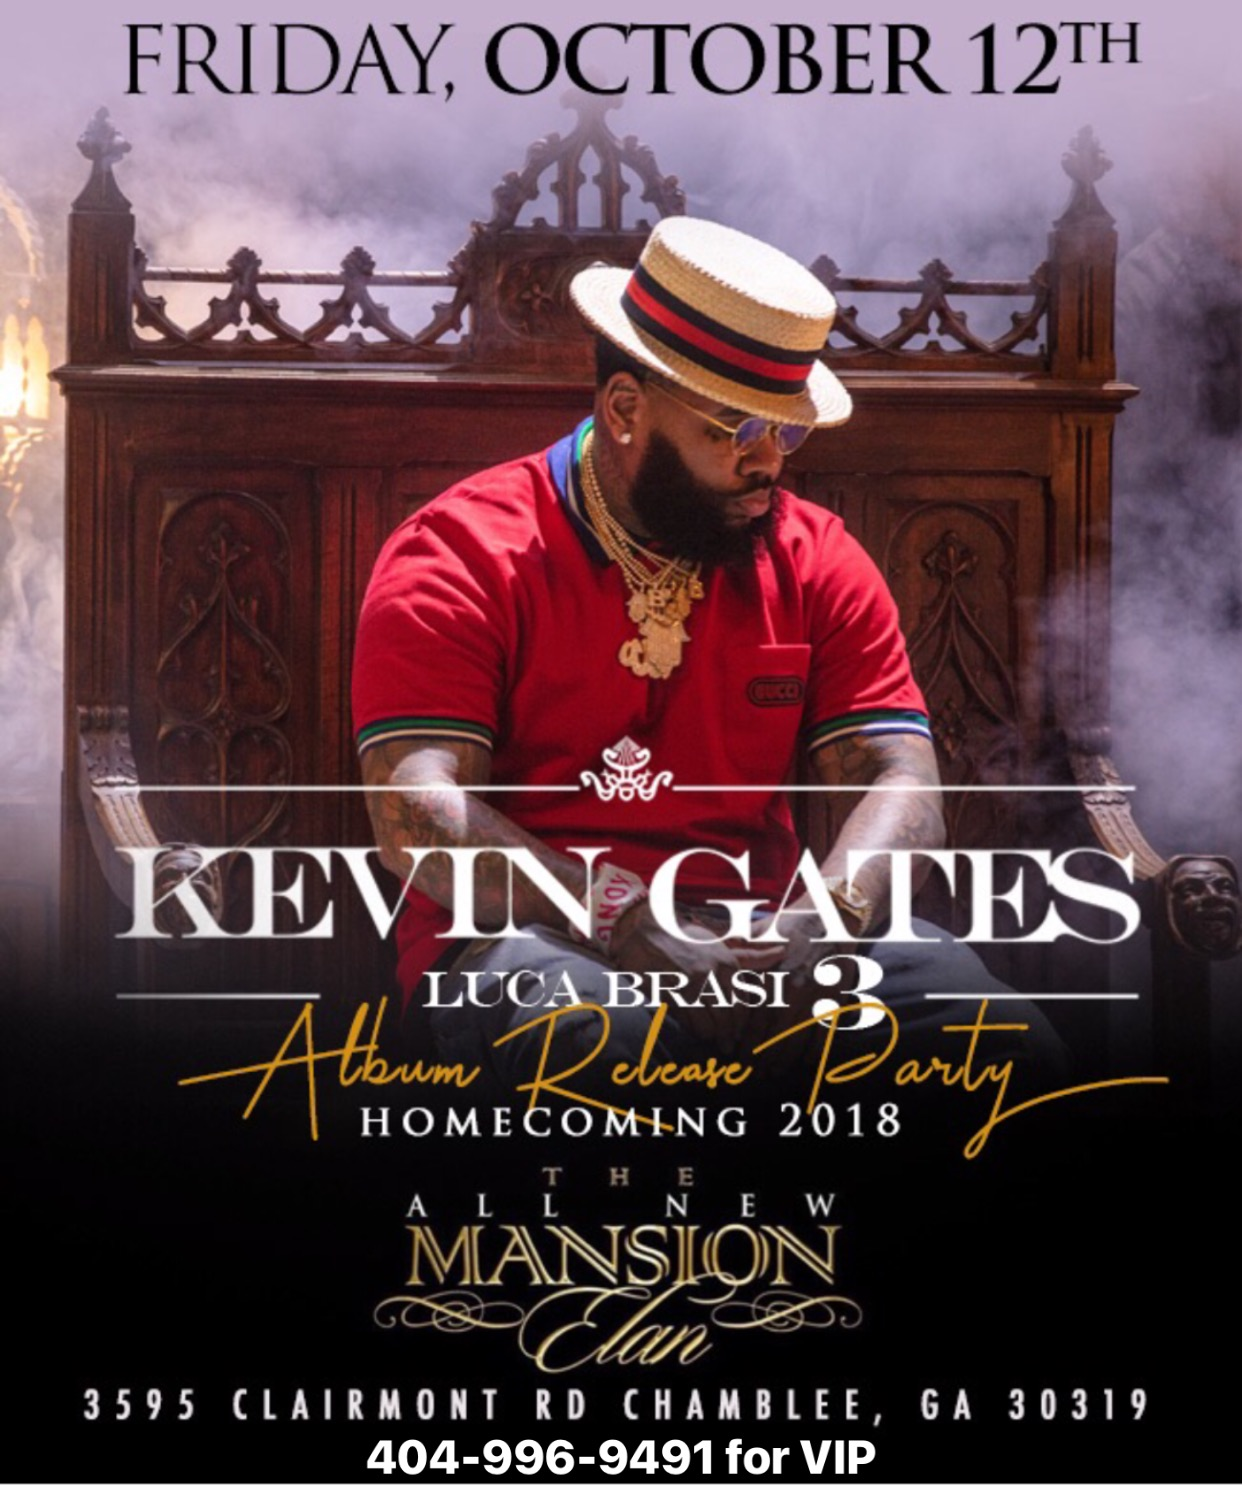 Kevin Gates Album Release Party Tickets 10/12/18